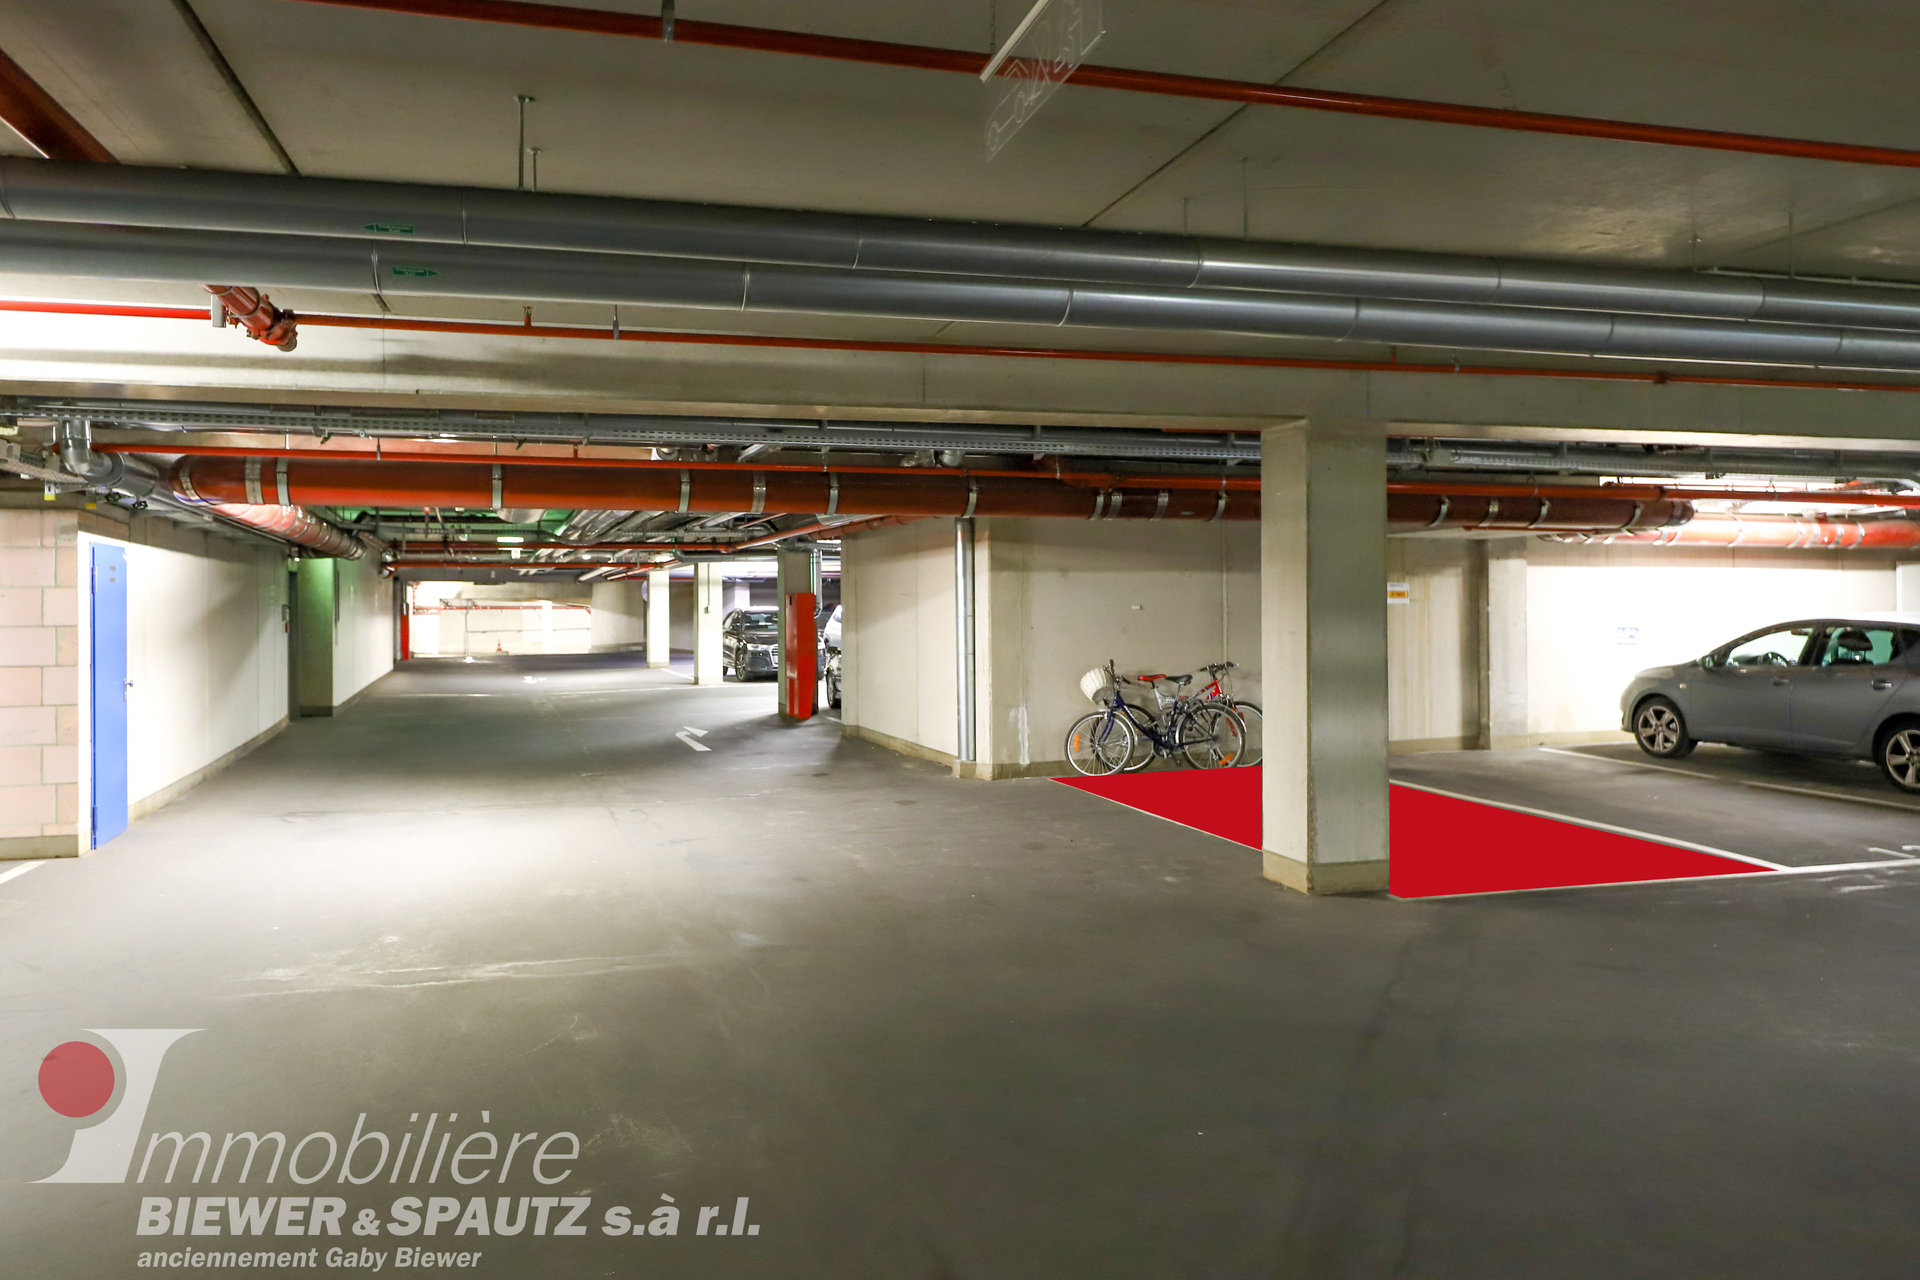 FOR SALE - interior parking spot for 1 car in Diekirch